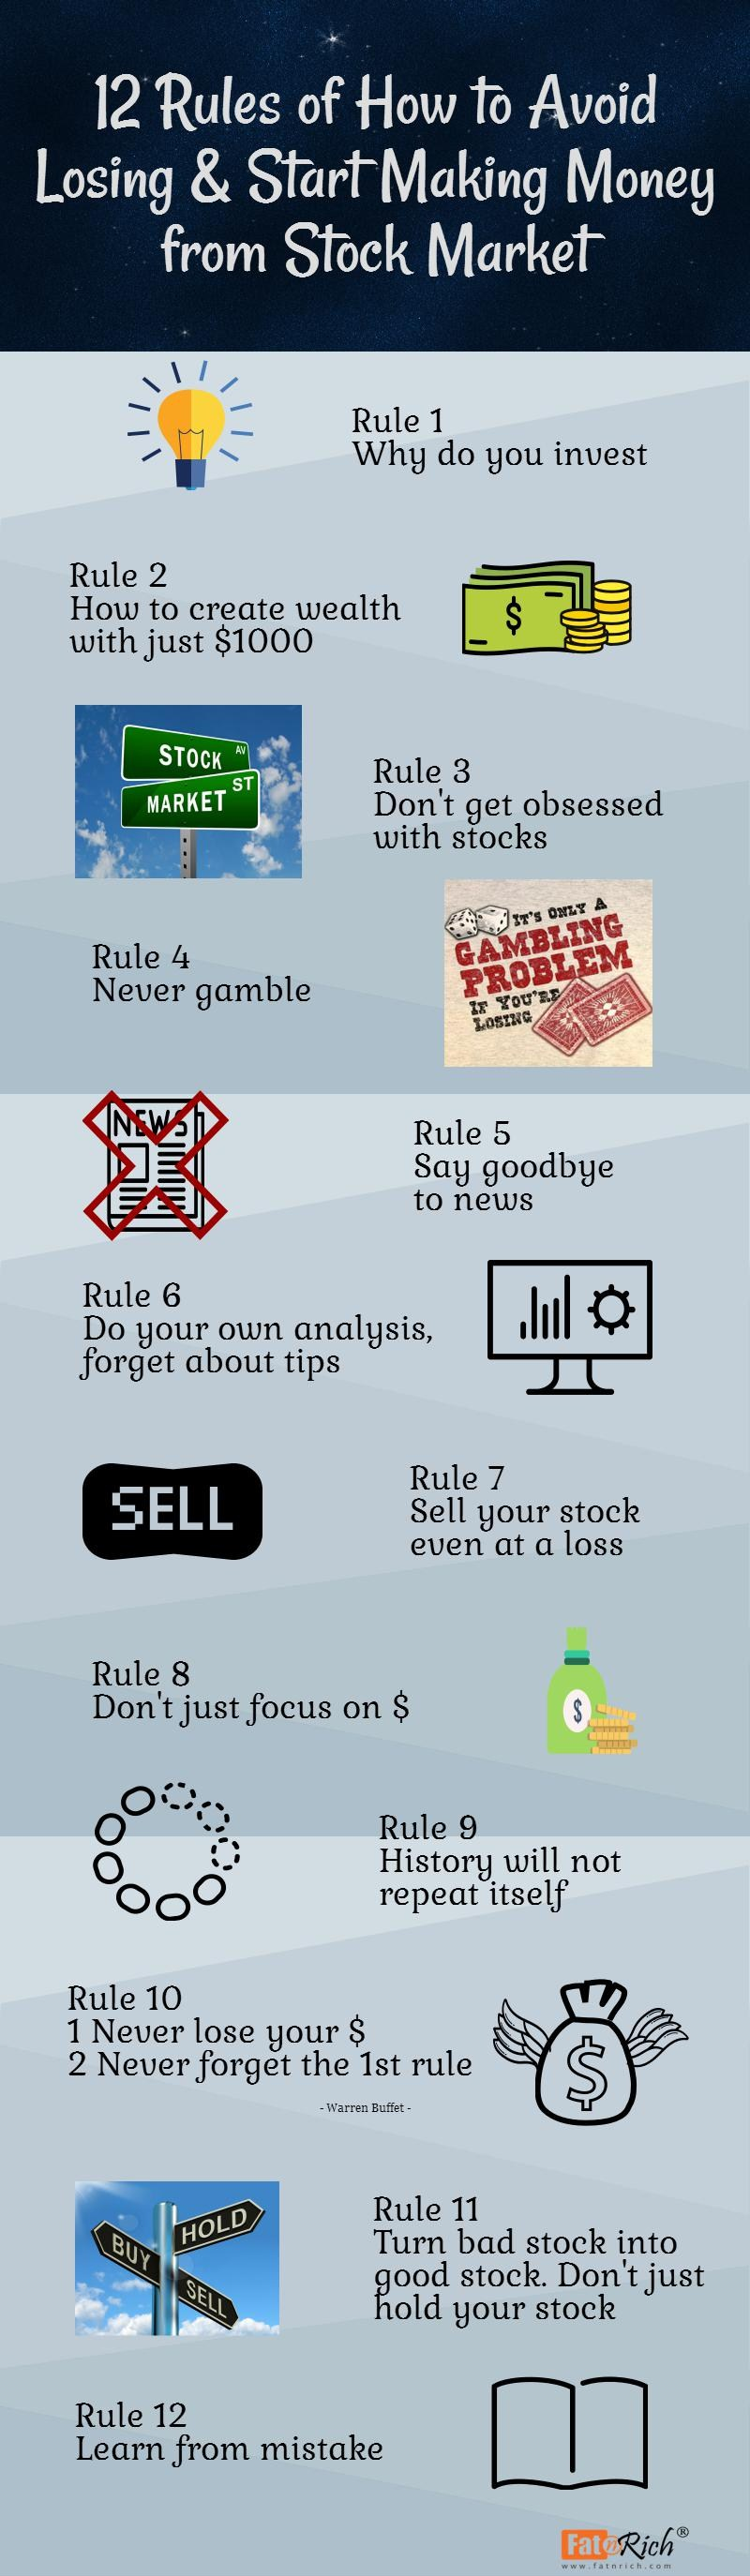 12 Rules of How to Avoid Losing and Start Making Money from Stock Market